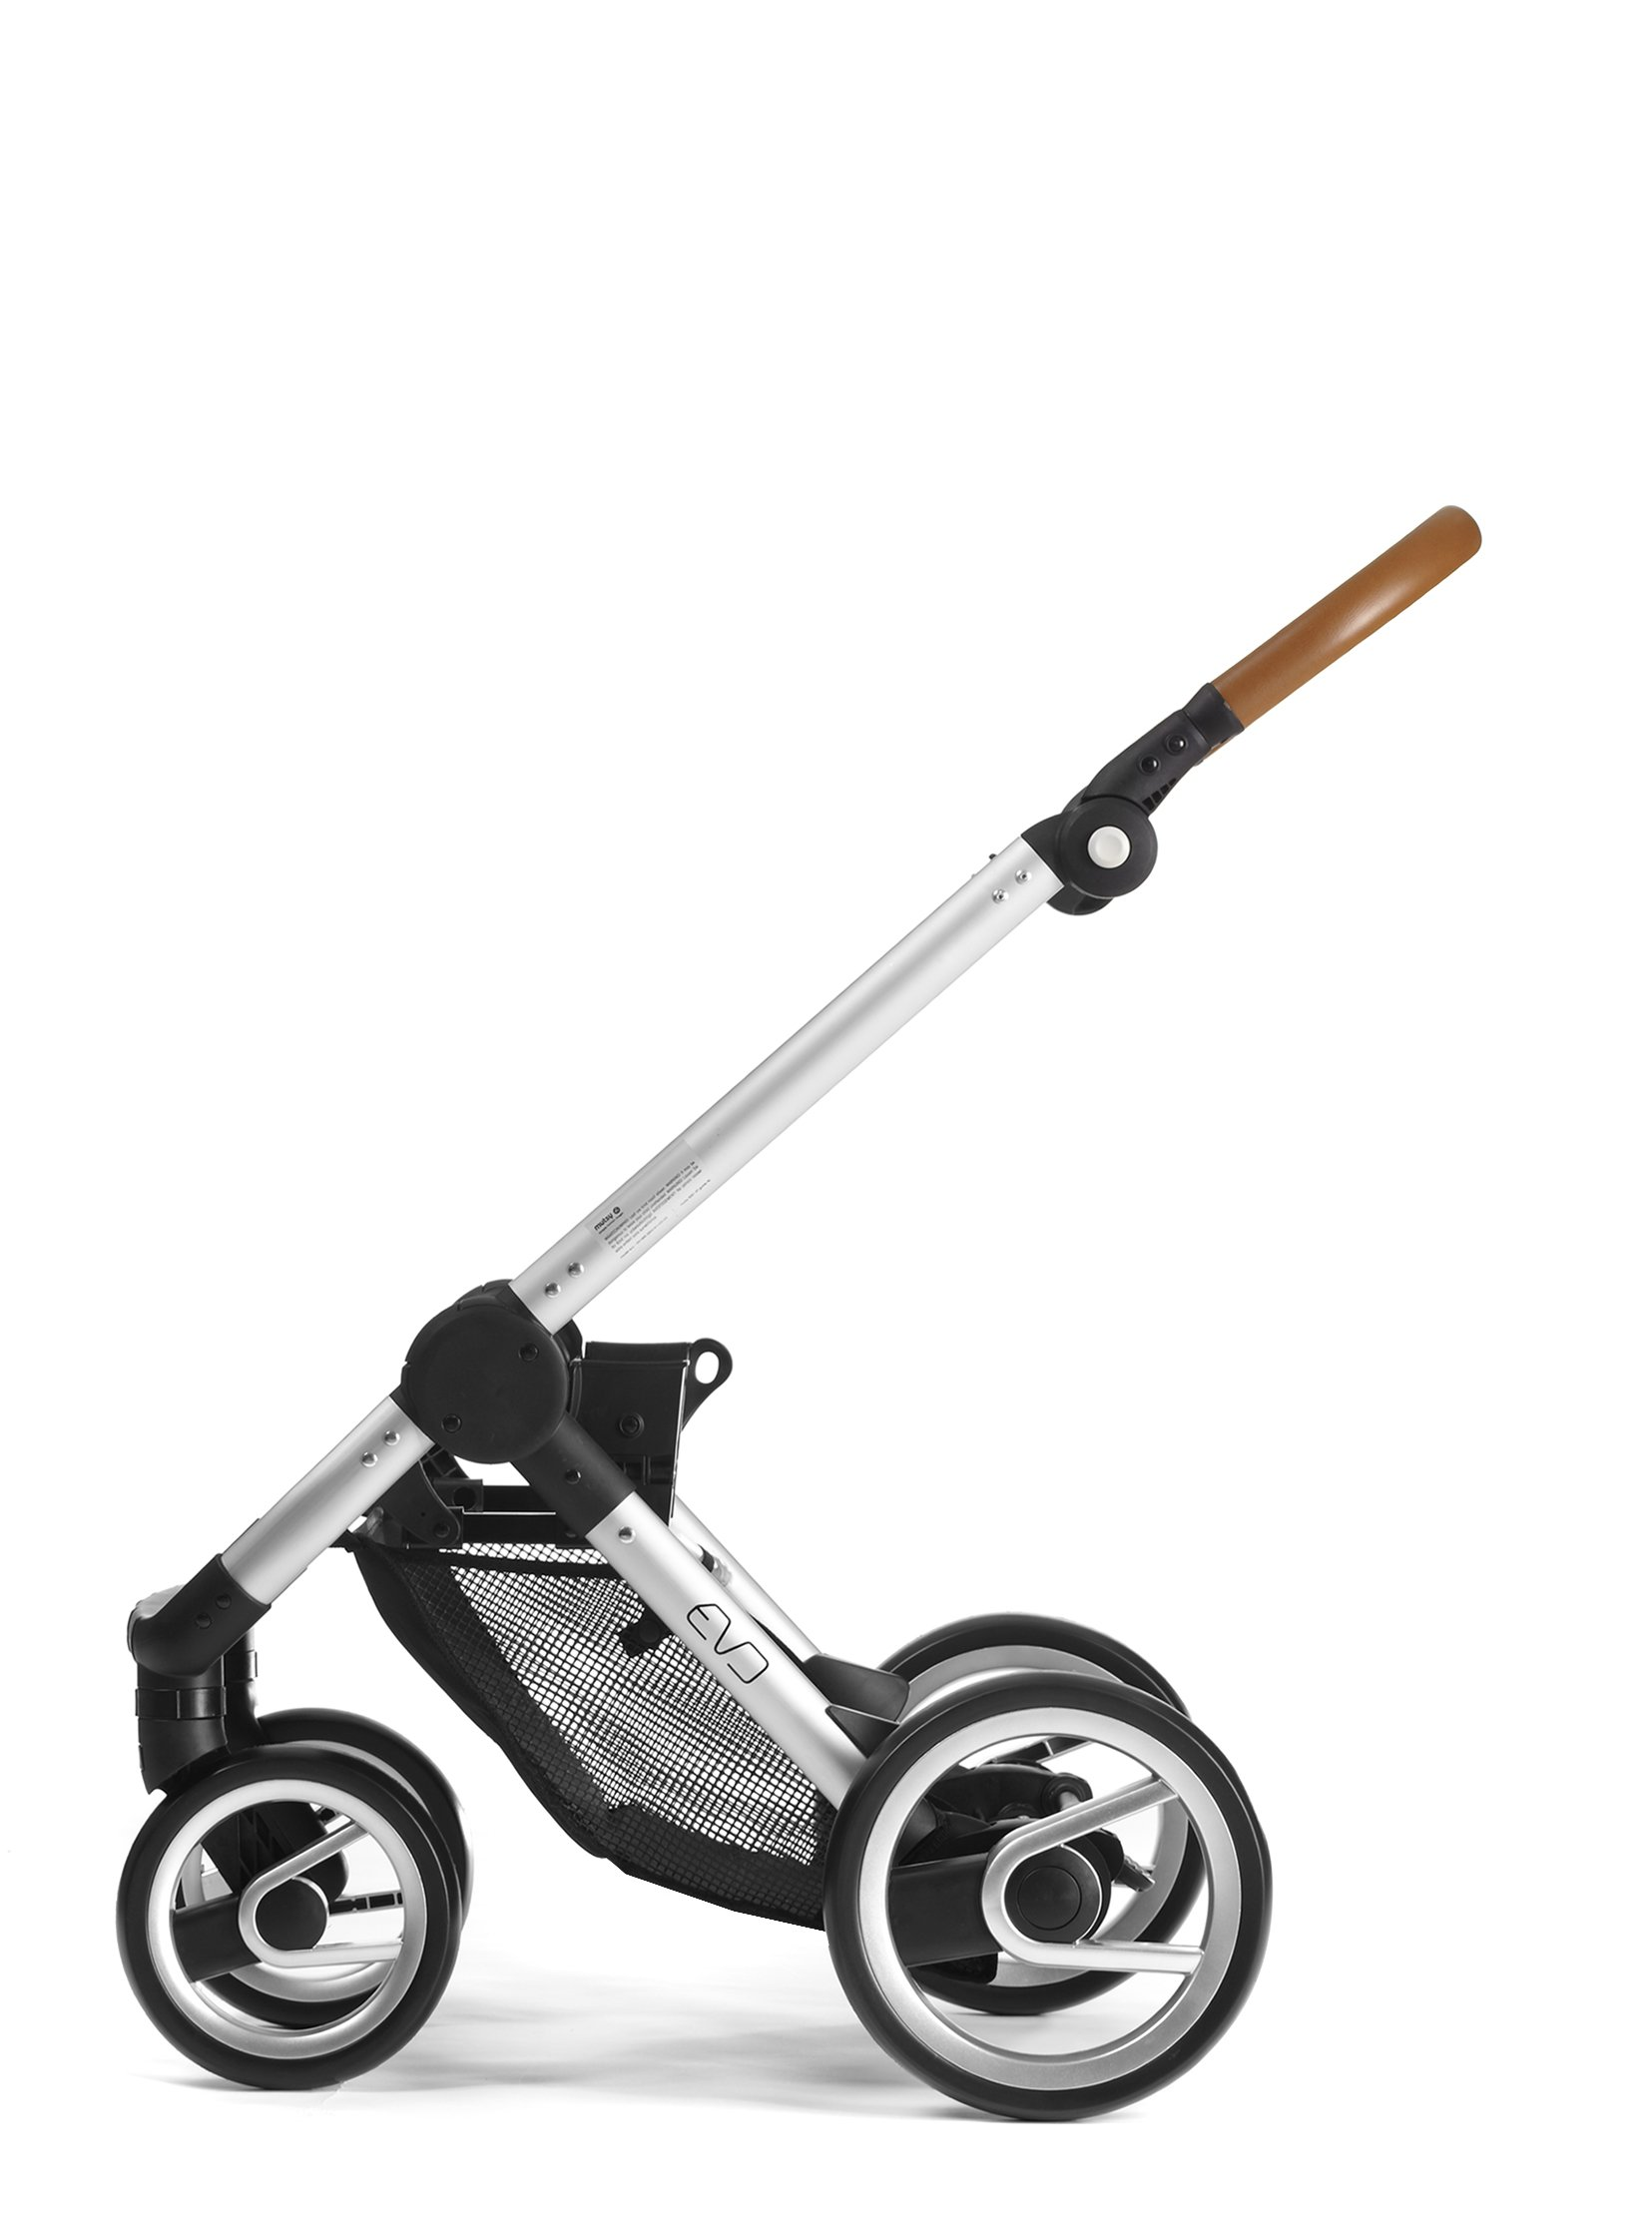 Mutsy Evo Urban Nomad Stroller, Silver Chassis, Light Grey by Mutsy (Image #4)